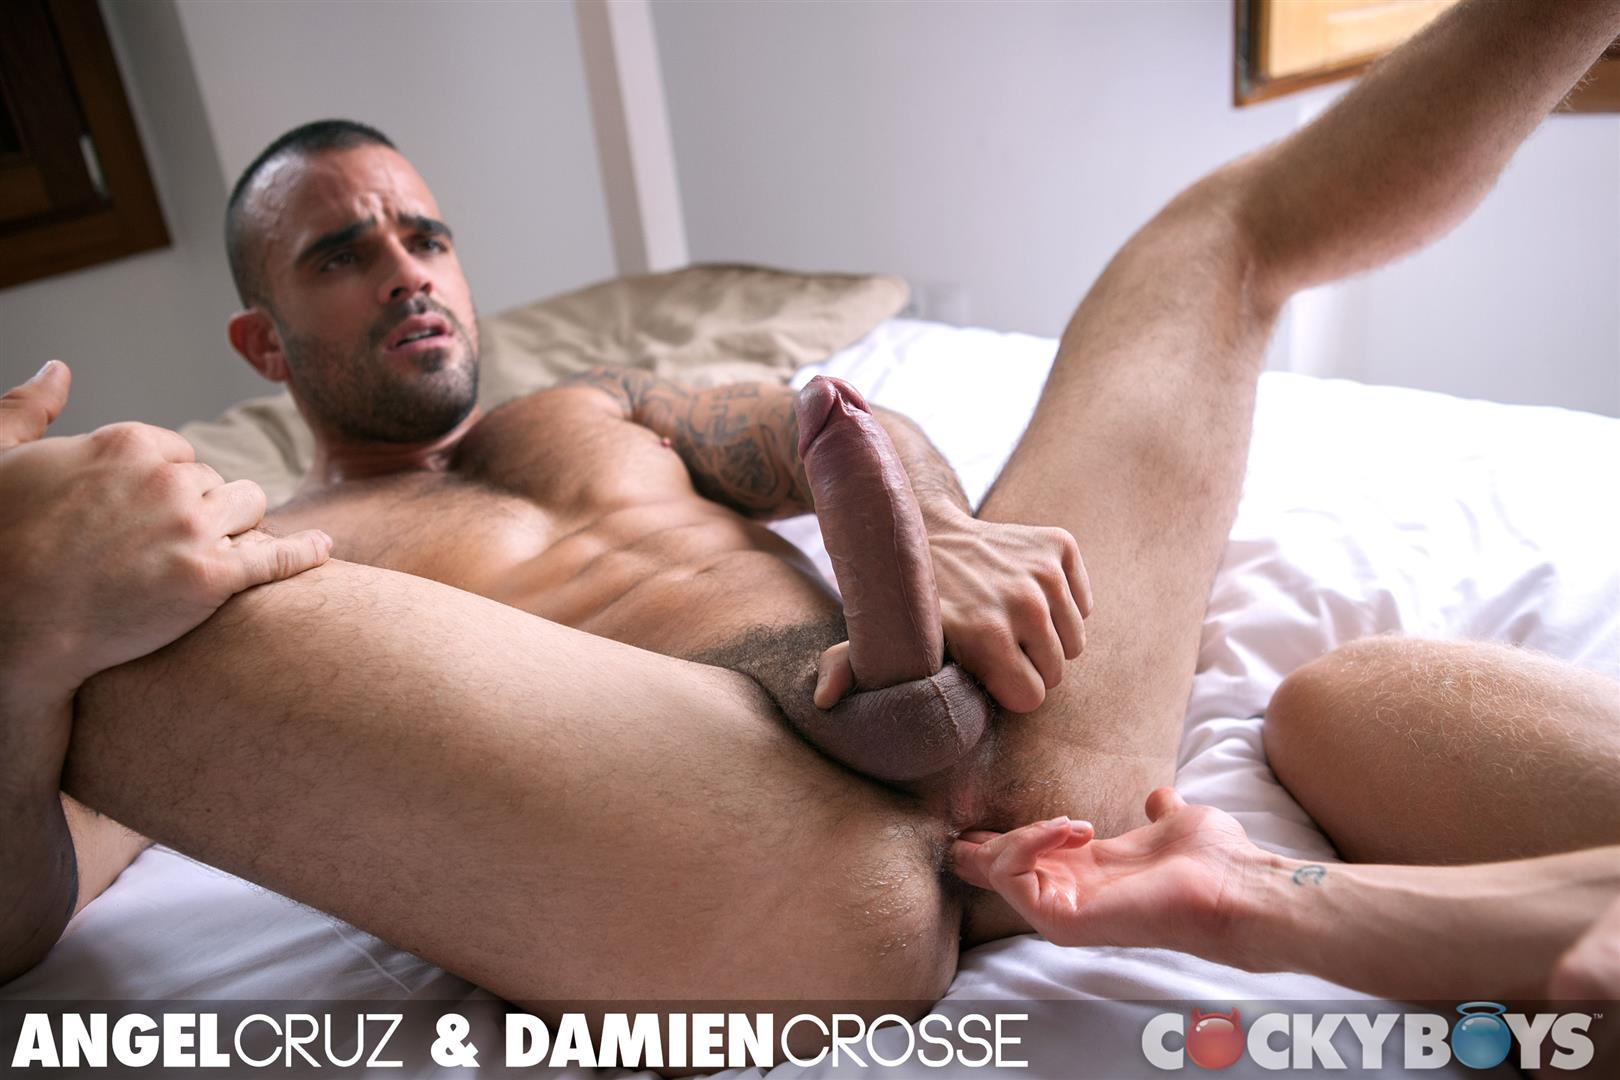 Cockyboys Angel Cruz and Damien Cross Big Uncut Cocks Fucking Amateur Gay Porn 35 Angel Cruz and Damien Cross Flip Fucking With Their Big Uncut Cocks